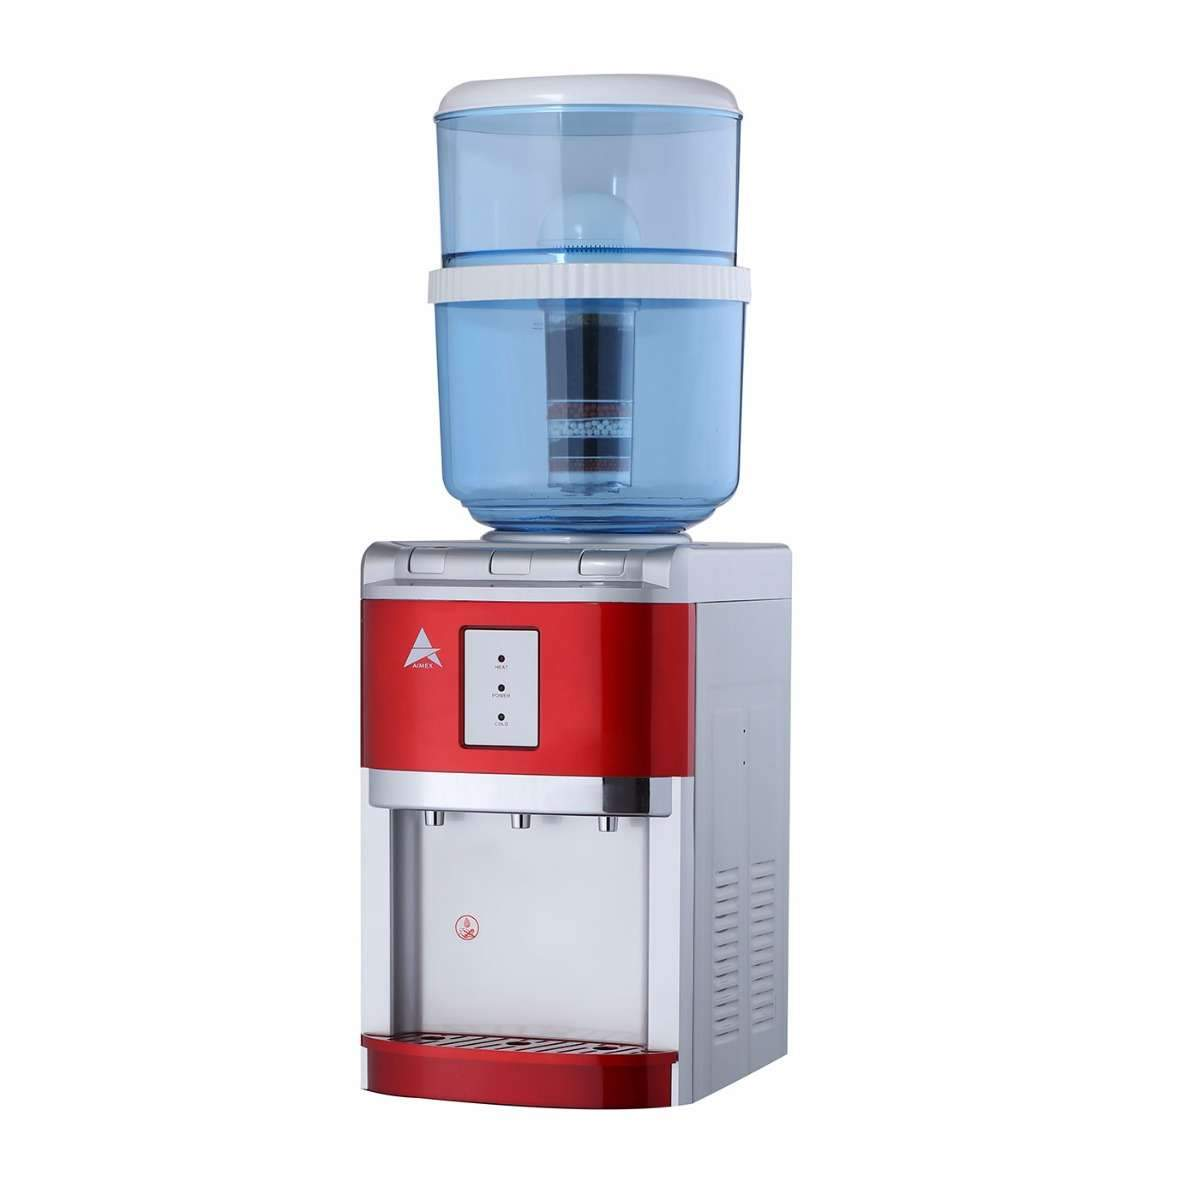 Benchtop Water Cooler chiller purifier hot cold Ambient Aimex Red - MDMAustralian